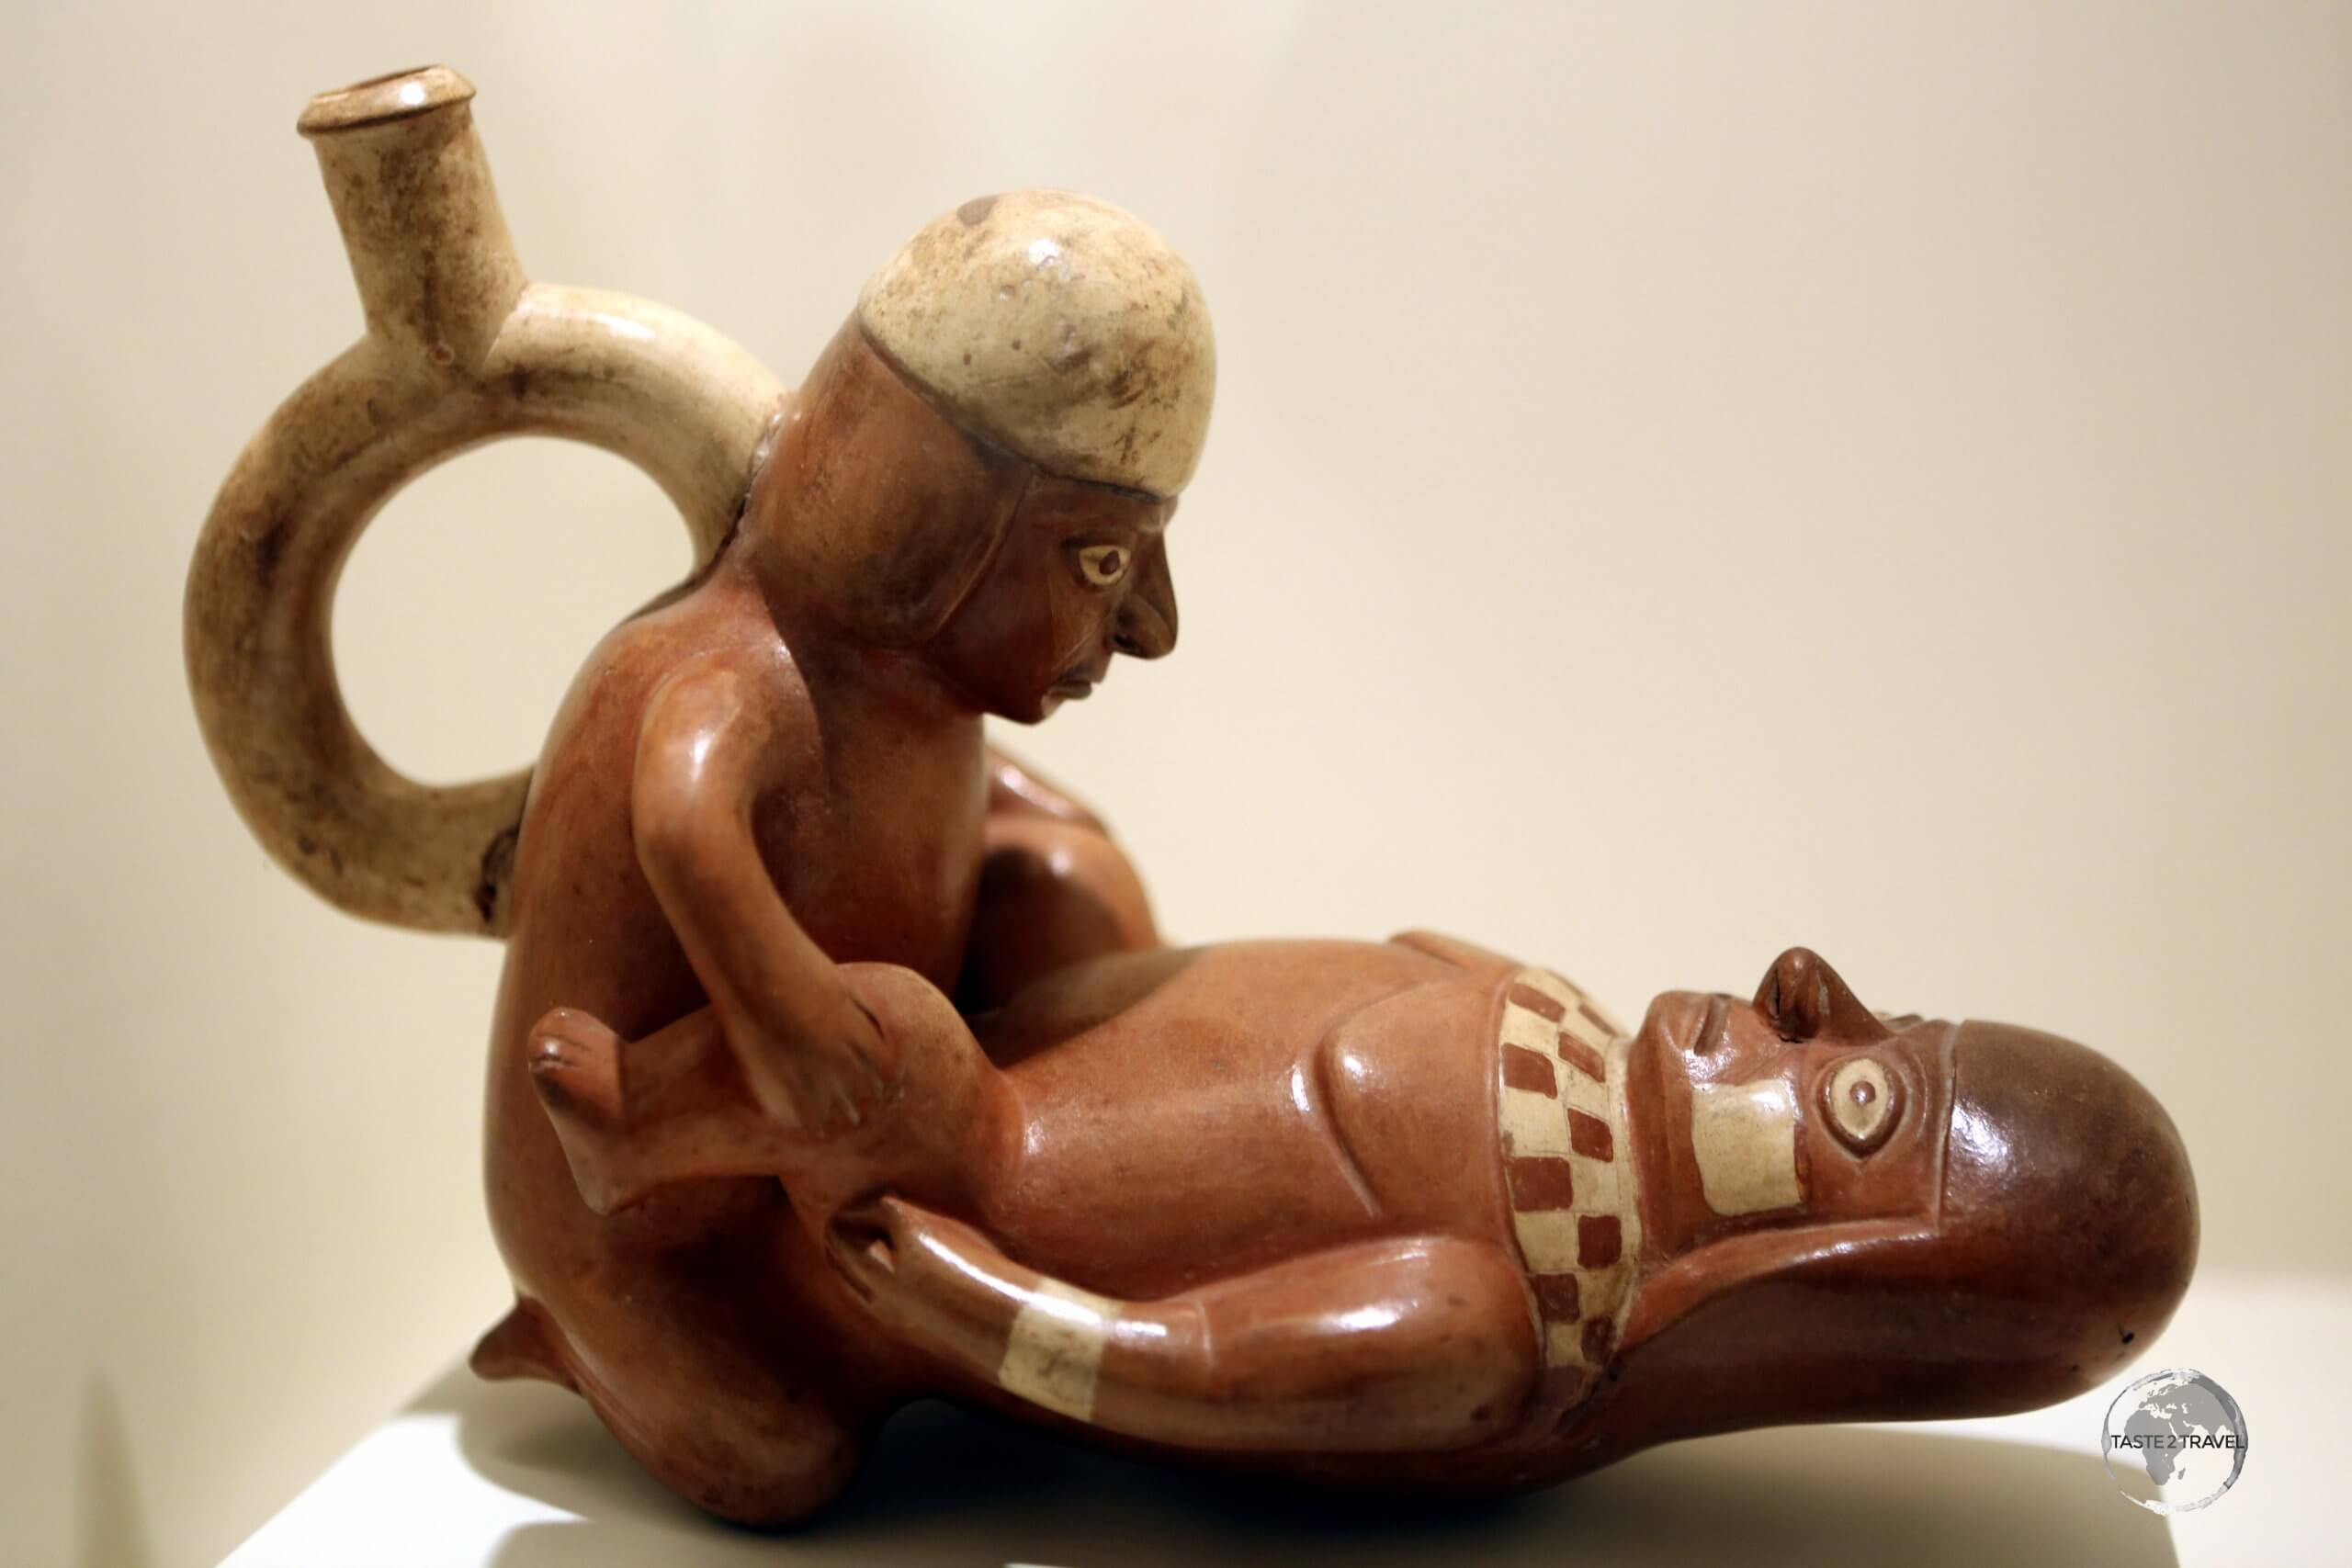 The gallery of pre-Columbian Erotic Pottery at Museo Larco in Lima, displays a selection of archaeological, objects found by Rafael Larco Hoyle in the 1960s.